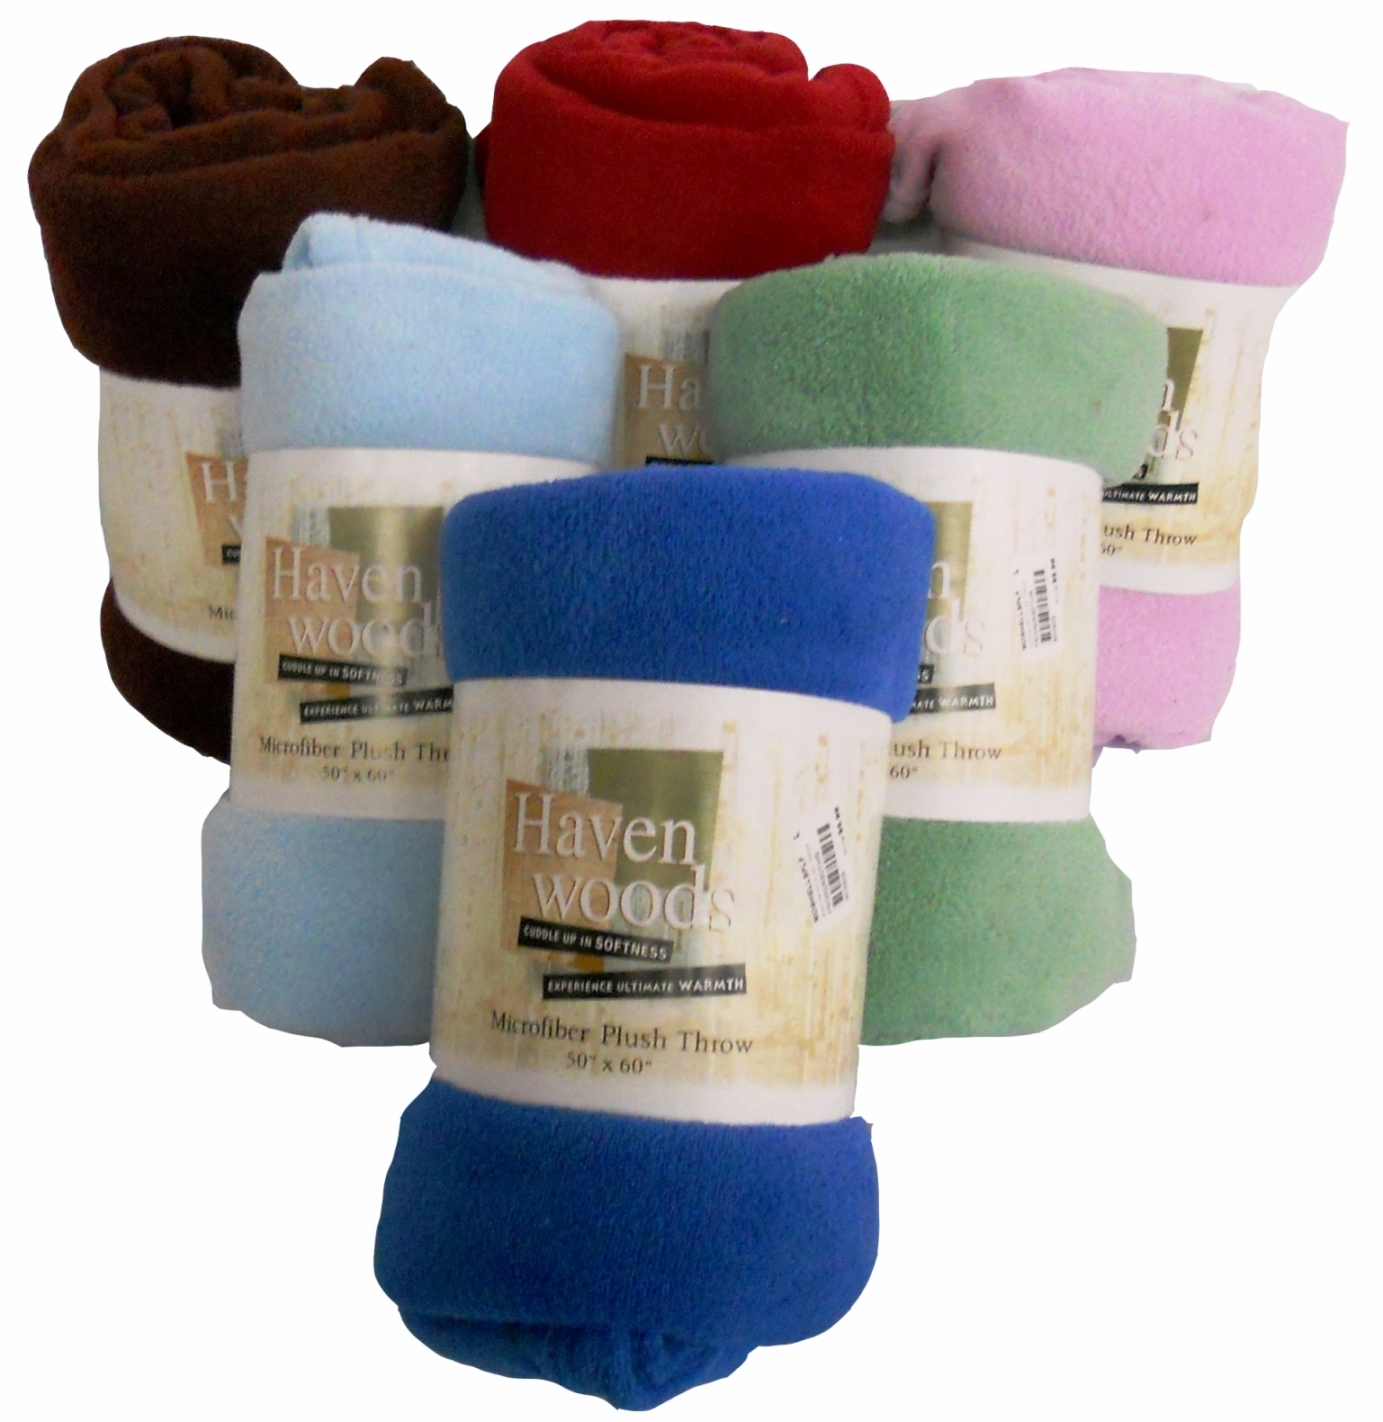 Super Soft Microfiber Plush Throw